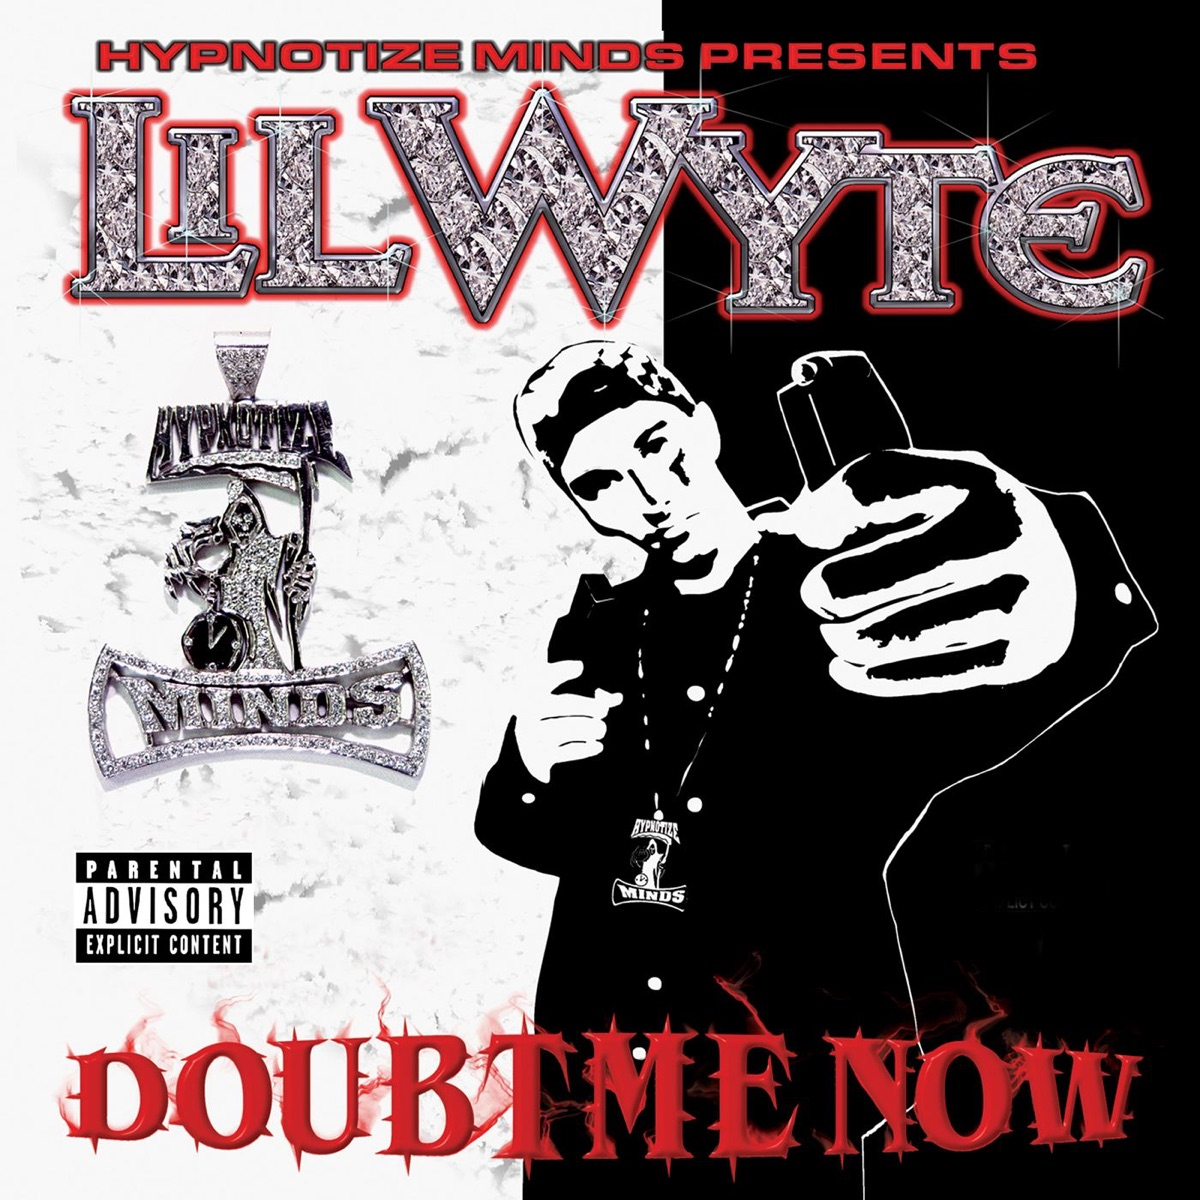 Doubt Me Now Lil Wyte CD cover